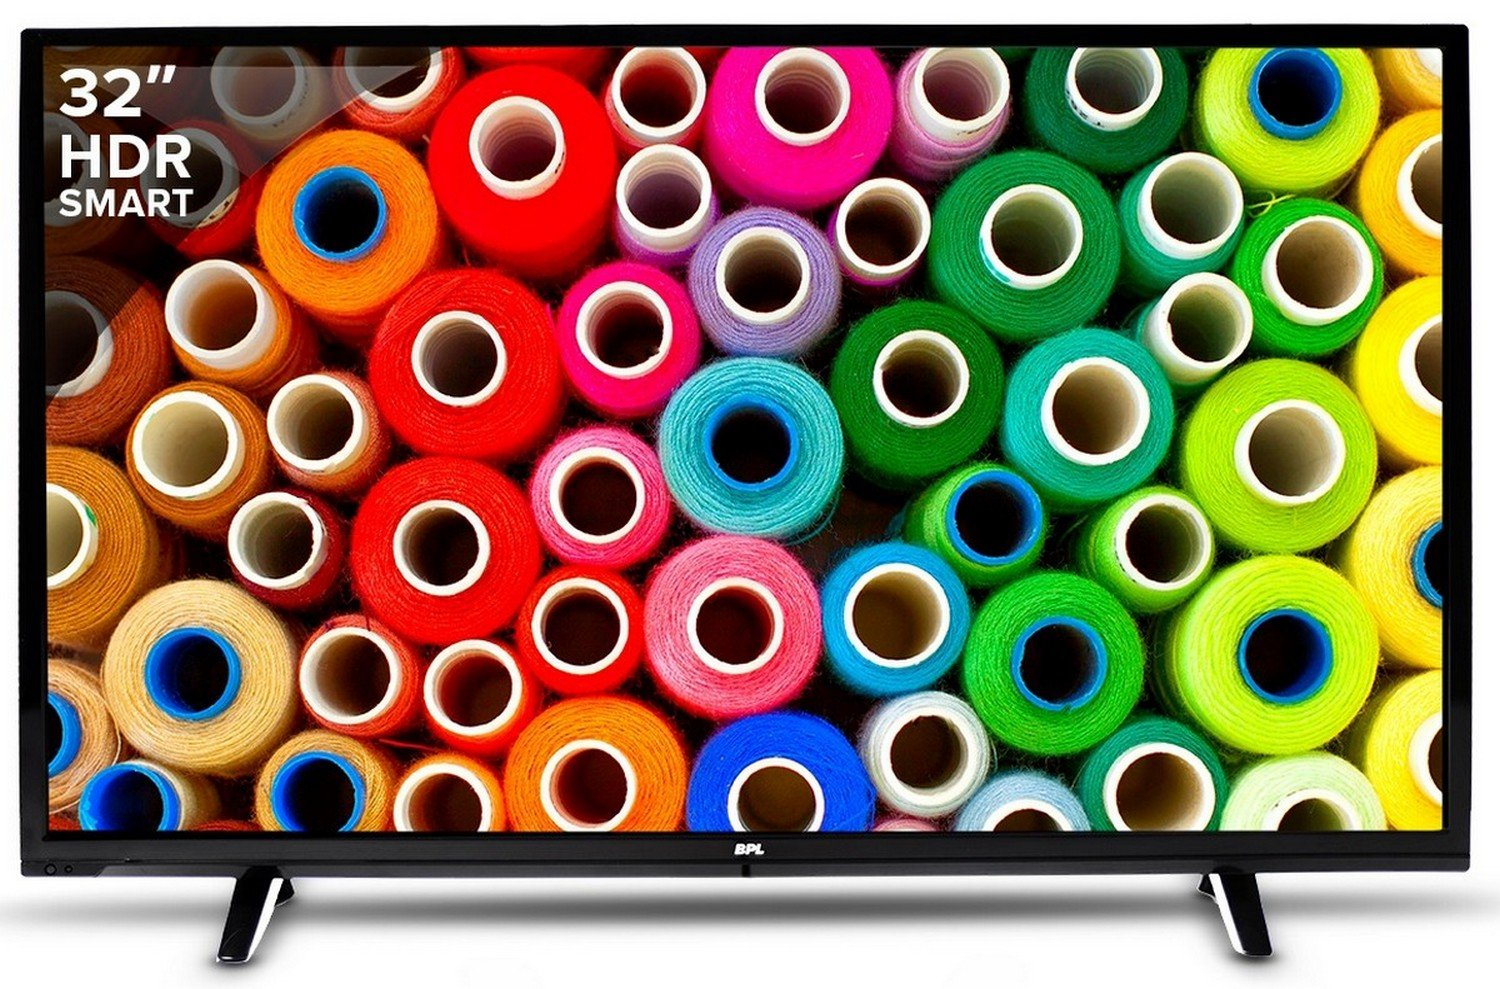 BPL 80 cm (32 inches) Stellar BPL080A36SHJ HD Ready LED Smart TV (Black)- 40% OFF